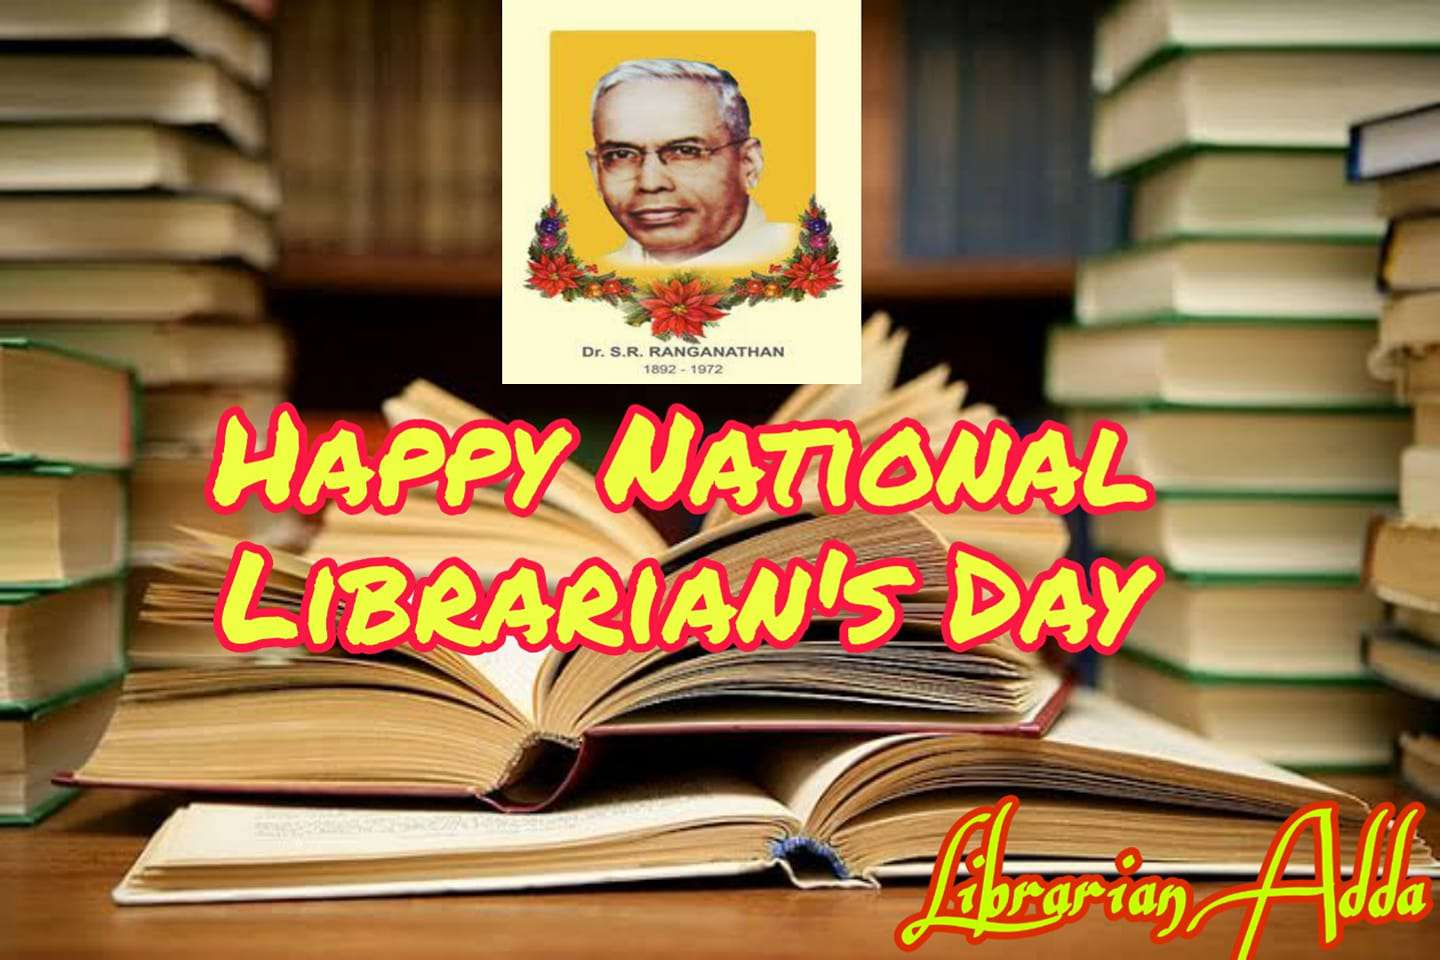 National Librarian Day Wishes Beautiful Image